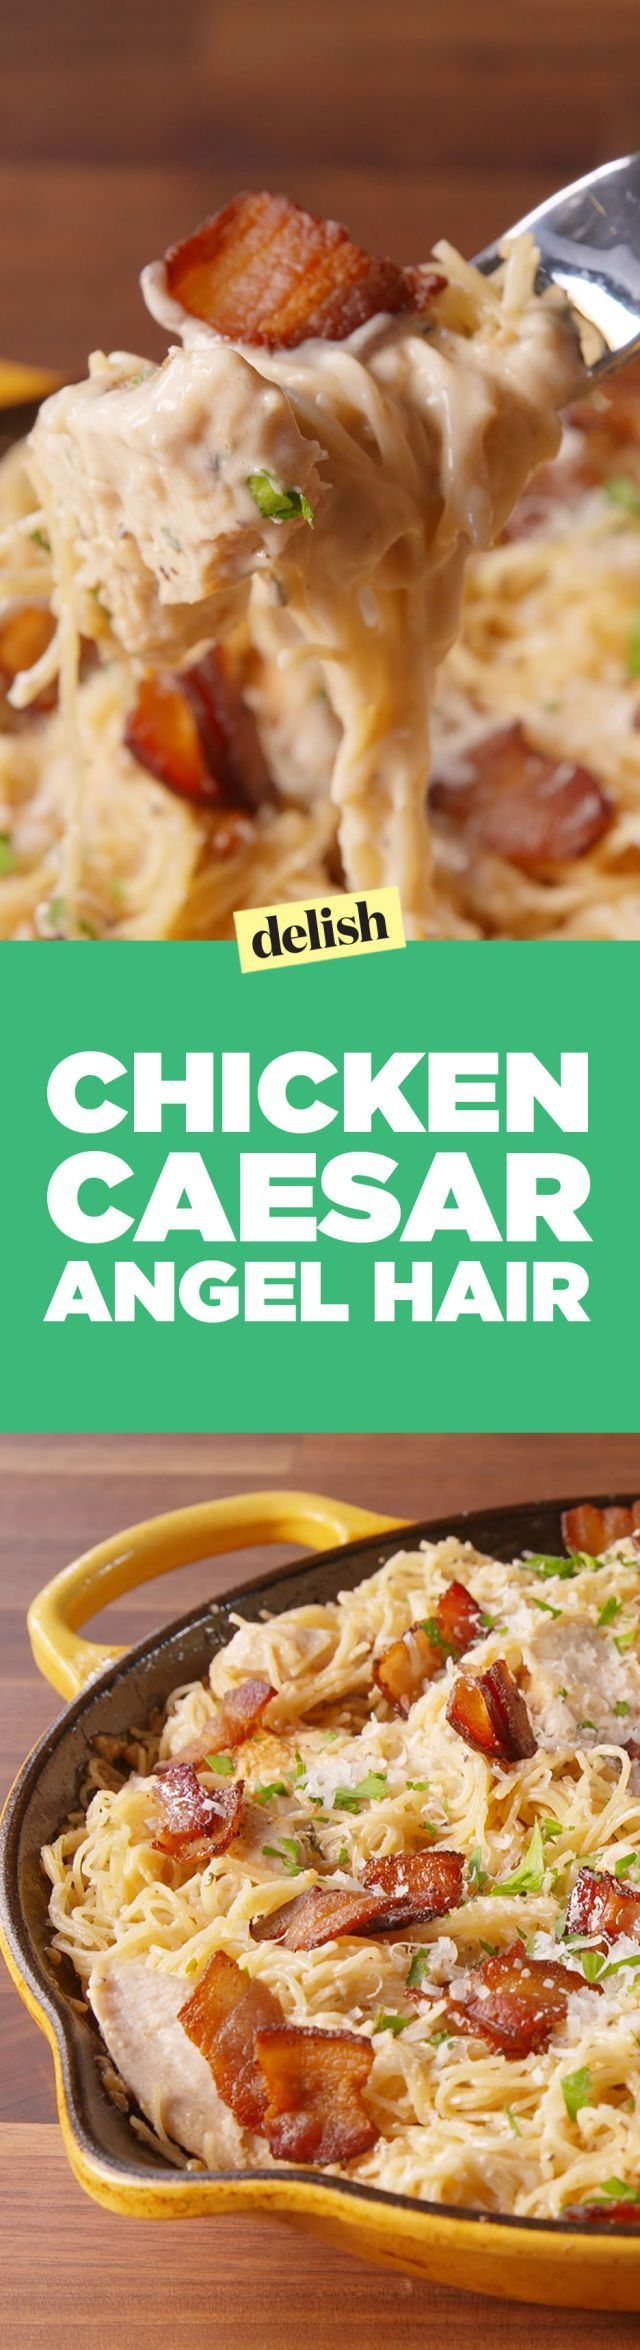 http://www.delish.com/cooking/recipe-ideas/recipes/a49951/caesar-angel-hair-recipe/